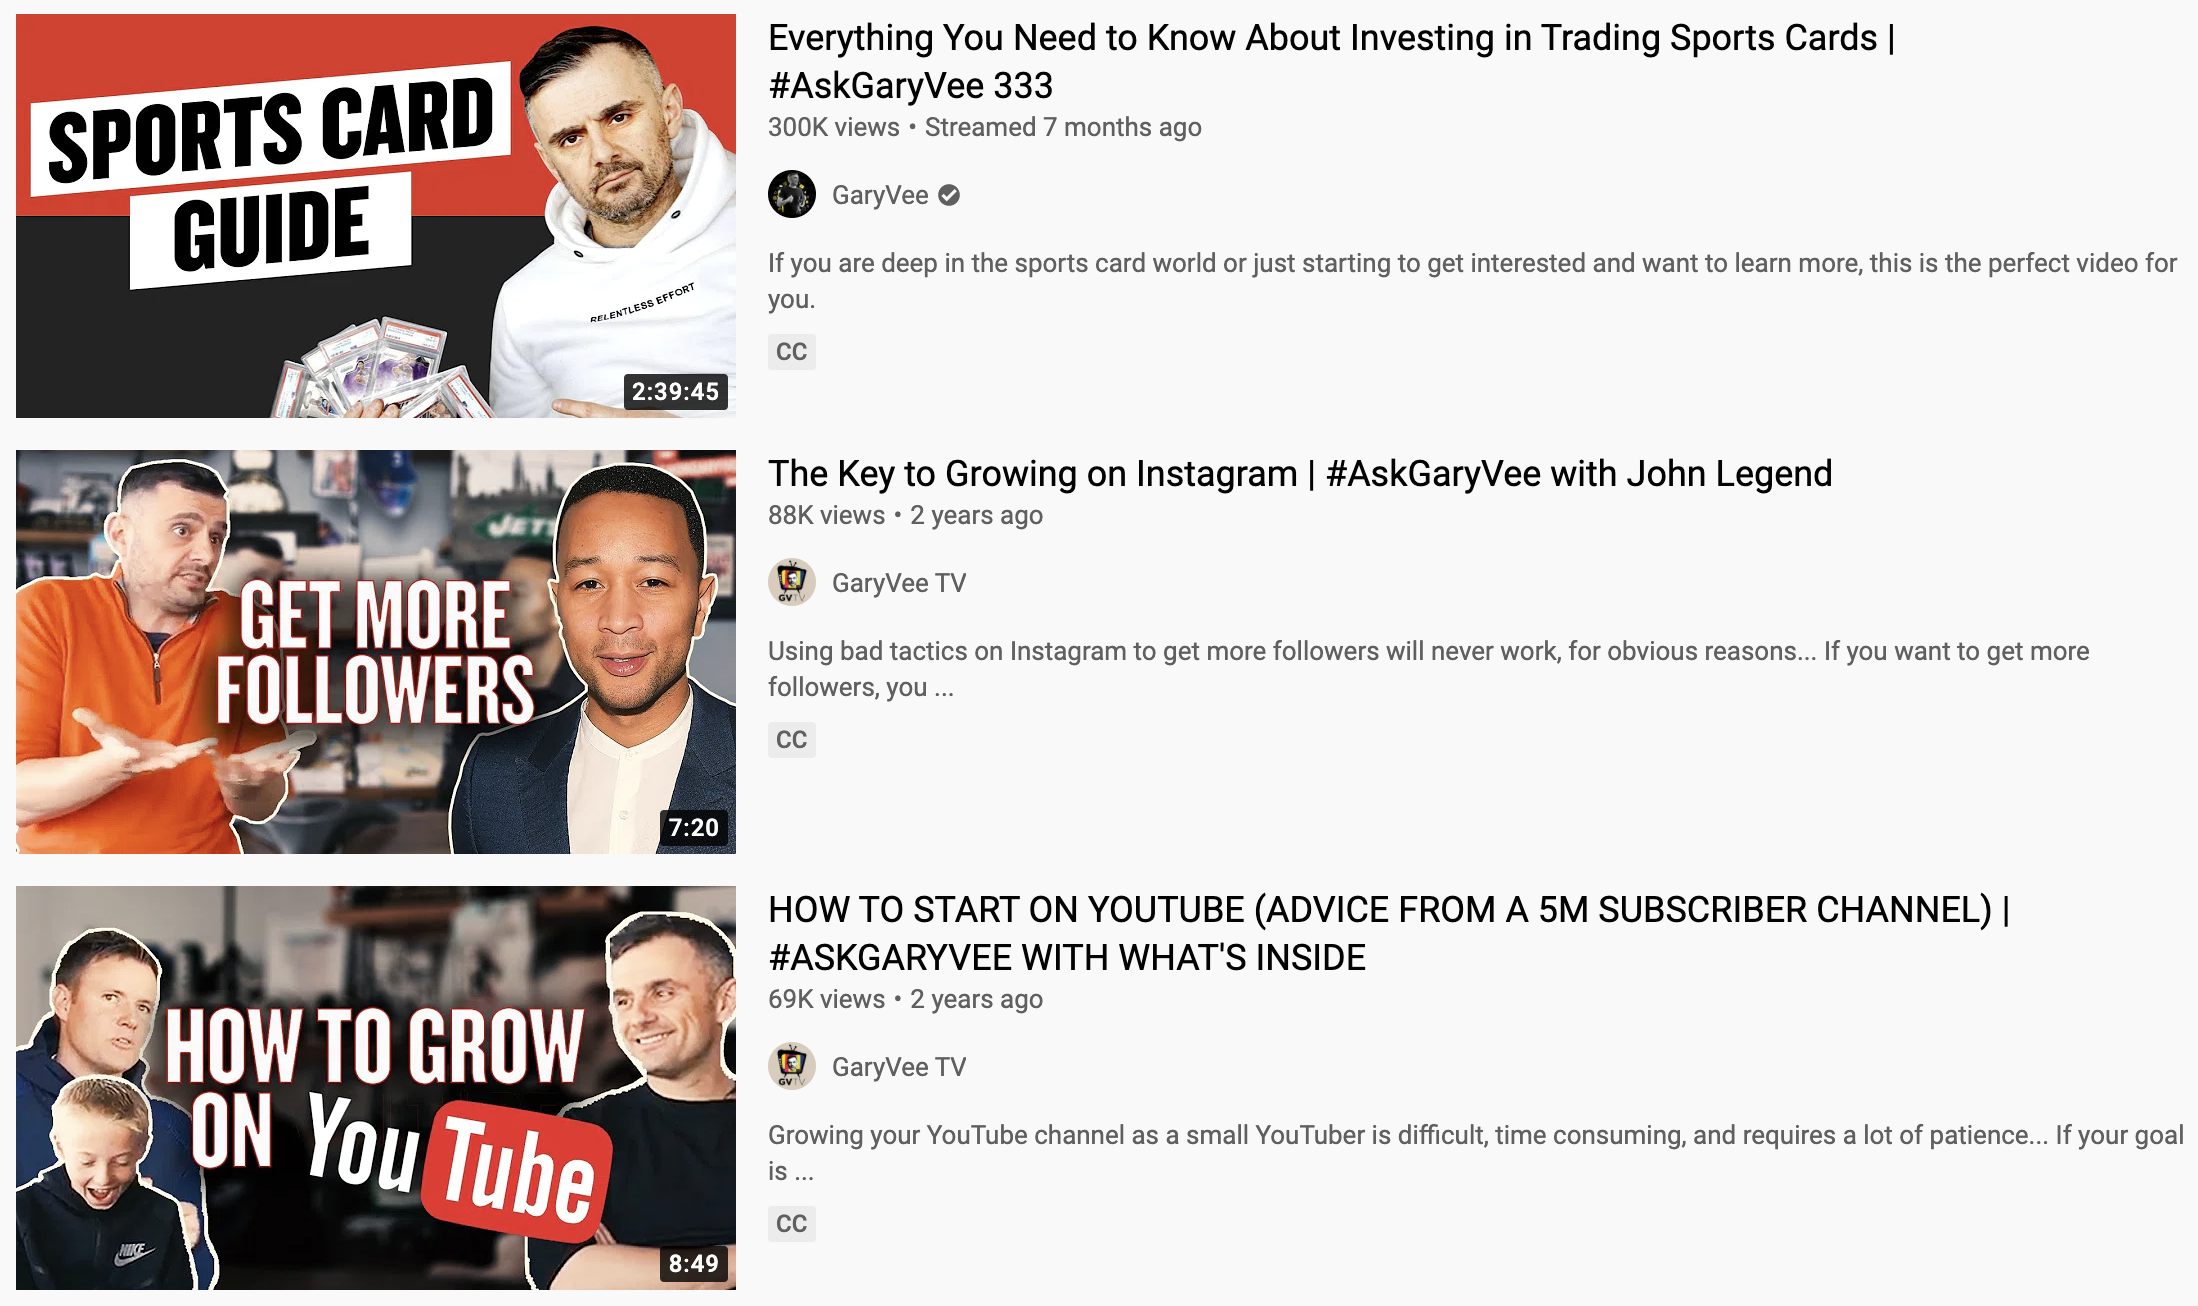 YouTube search results showcasing #AskGaryVee videos with the hashtag in the title.